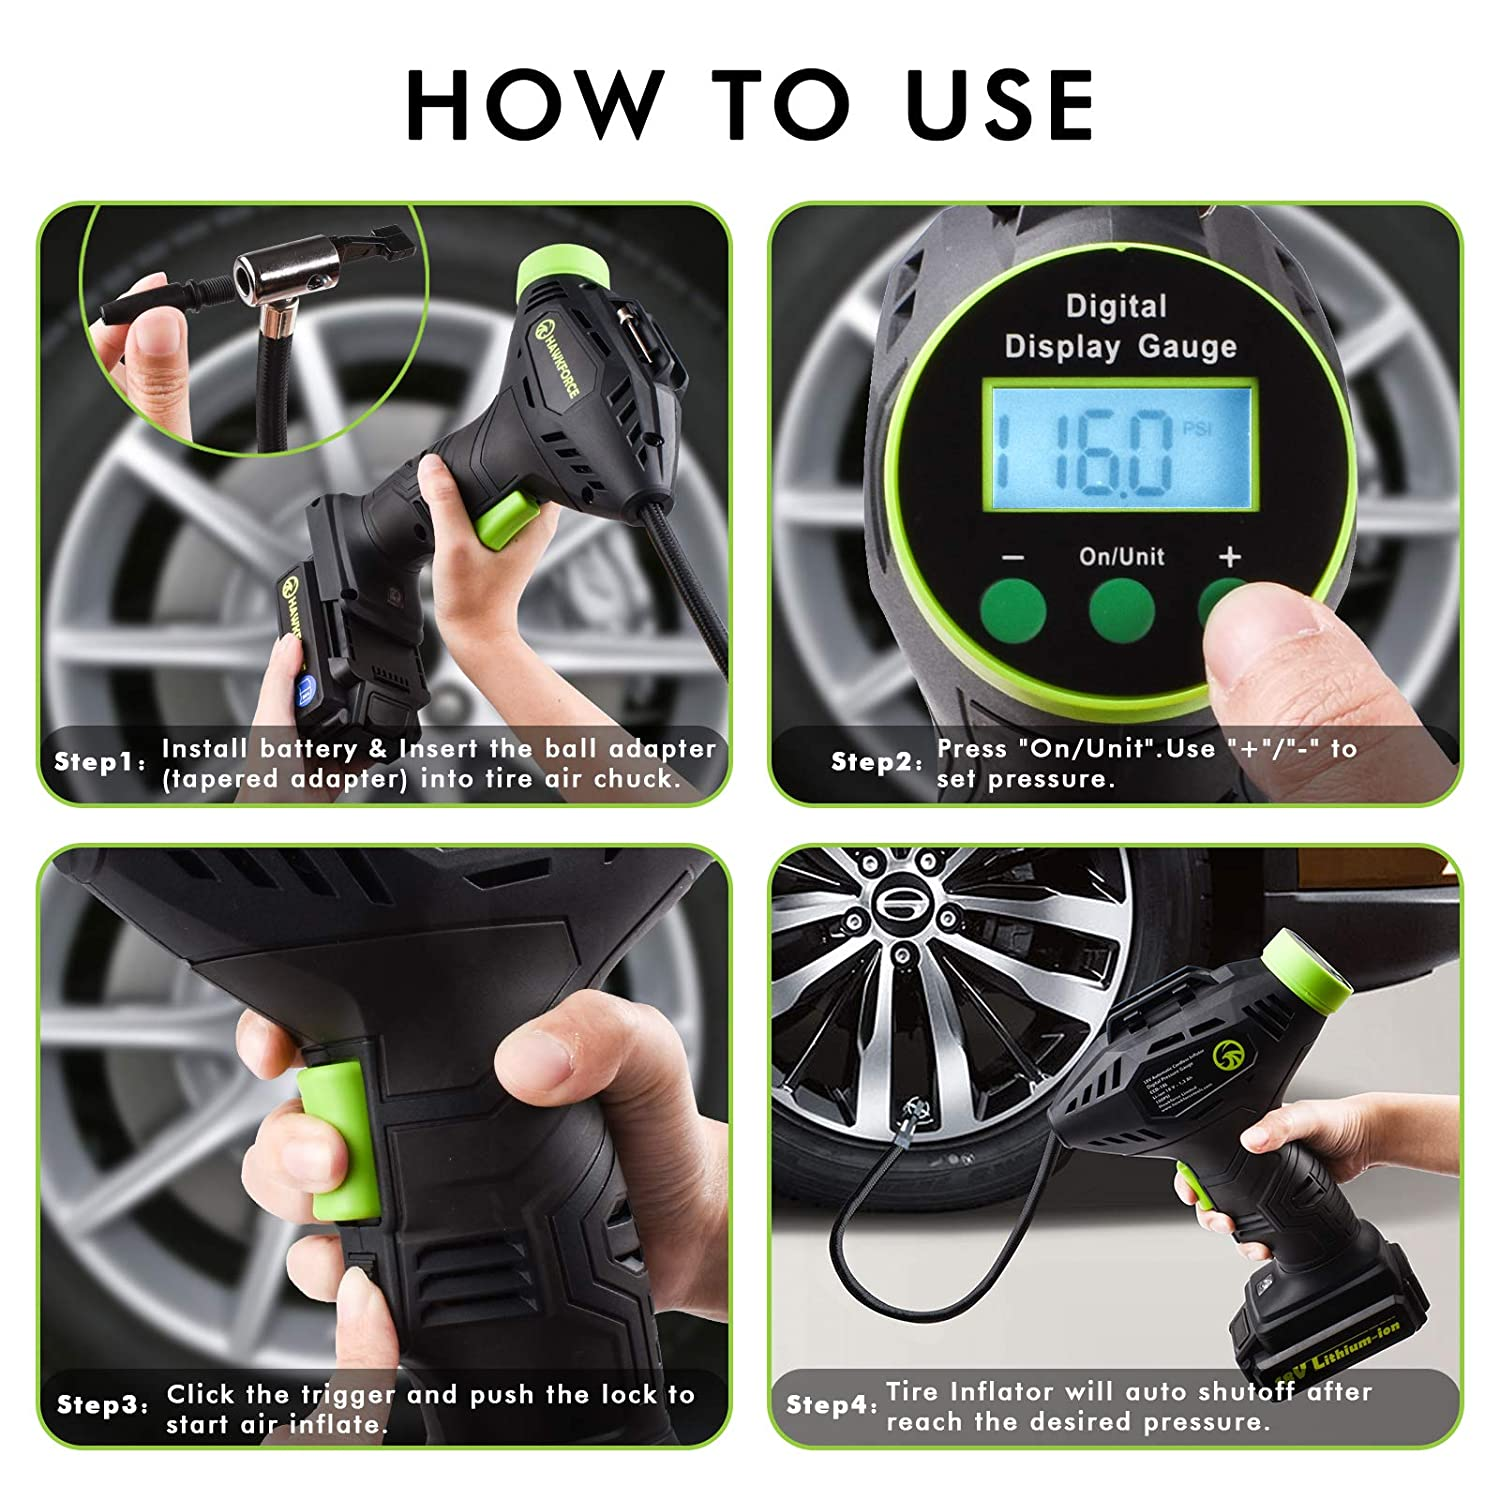 Tool Bag Long Length 99 Inches Car Charger Cordless Portable Air Compressor Car Tire Air Pump with Easy to Read Digital Pressure Gauge Built-in LED Light HAWKFORCE Tire Inflator